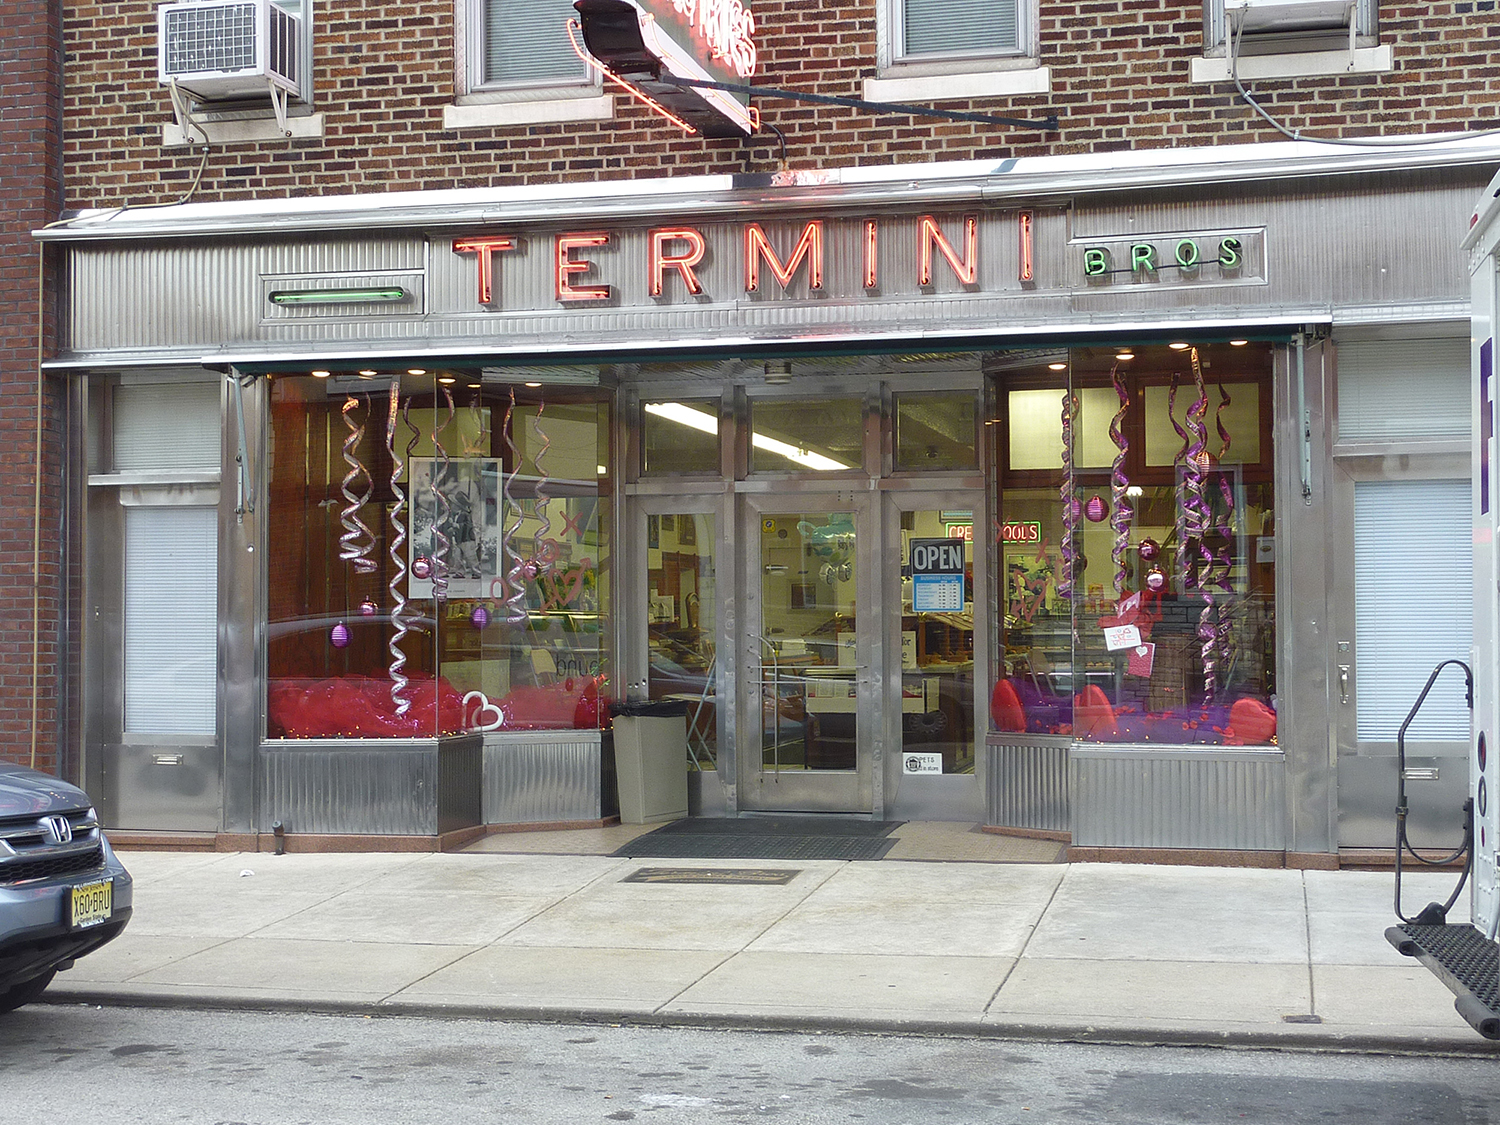 2011 Termini Brothers Bakery<strong>Philadelphia, PA</strong>